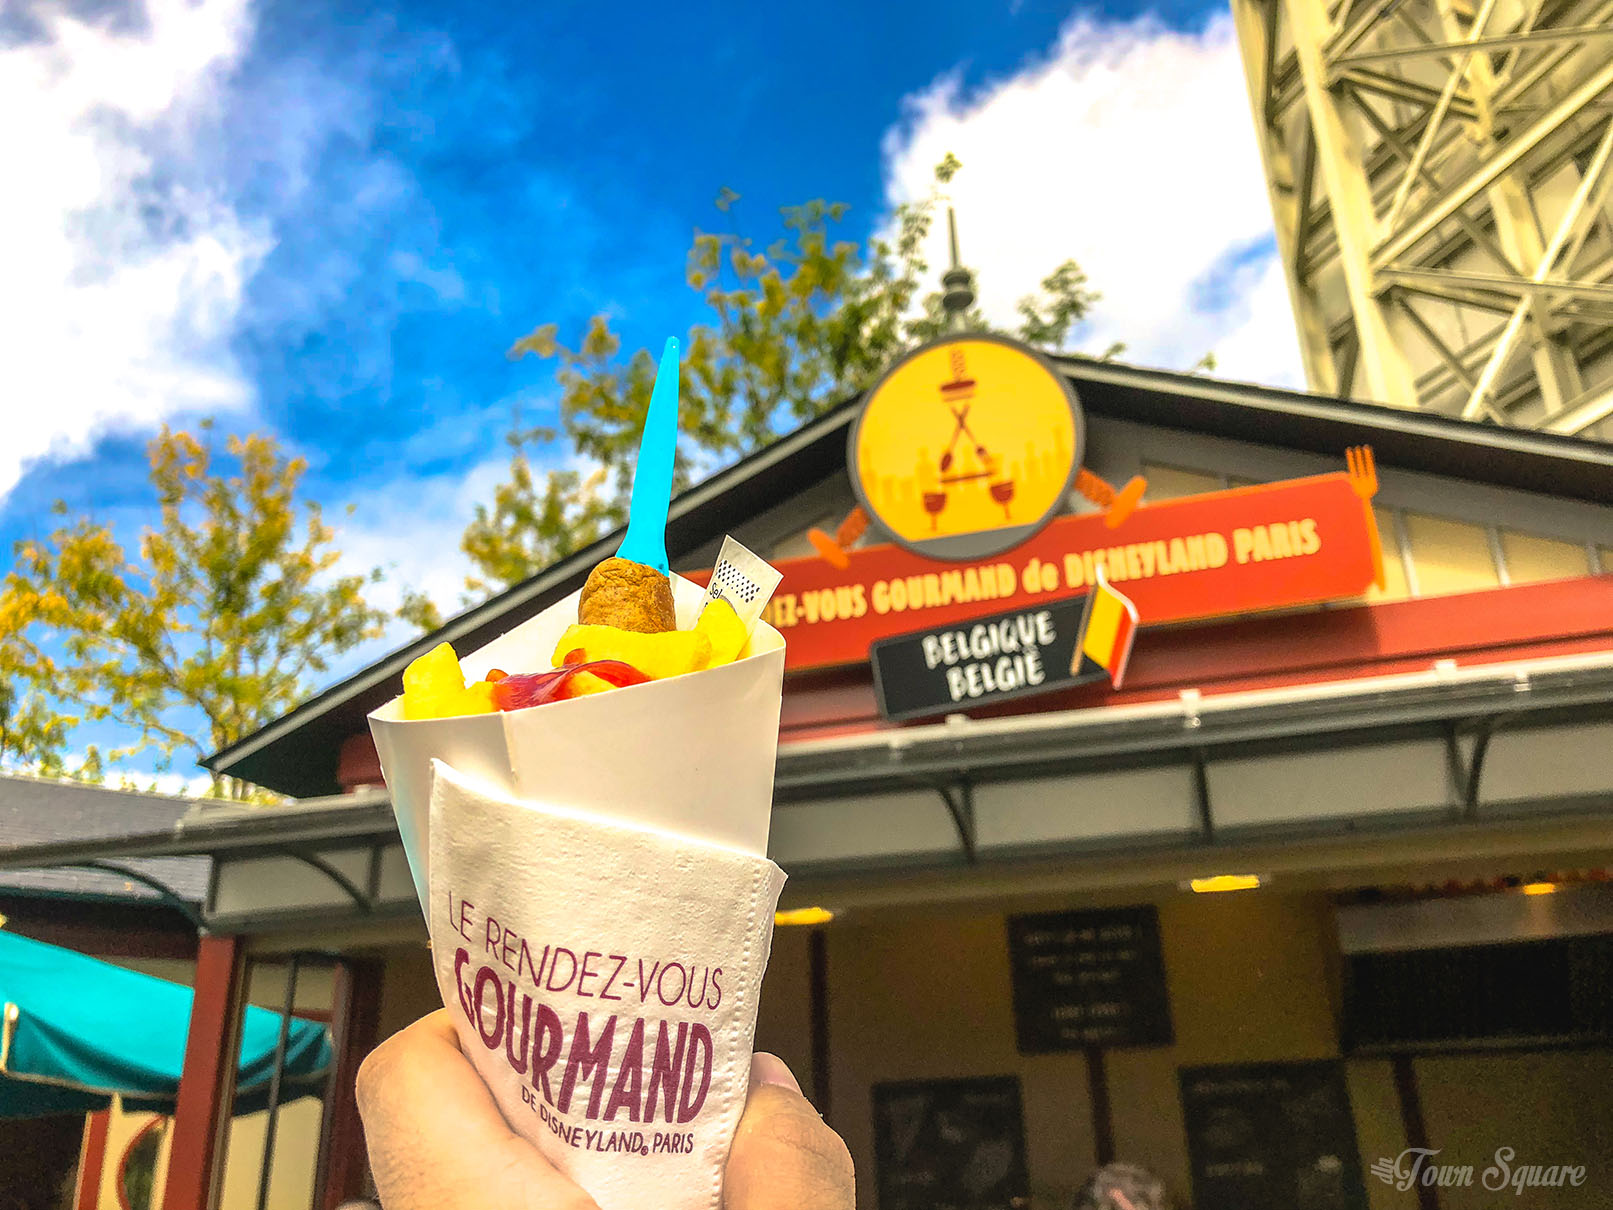 Fricadelle at the Rendez-Vous Gourmand 2018 in Disneyland Paris